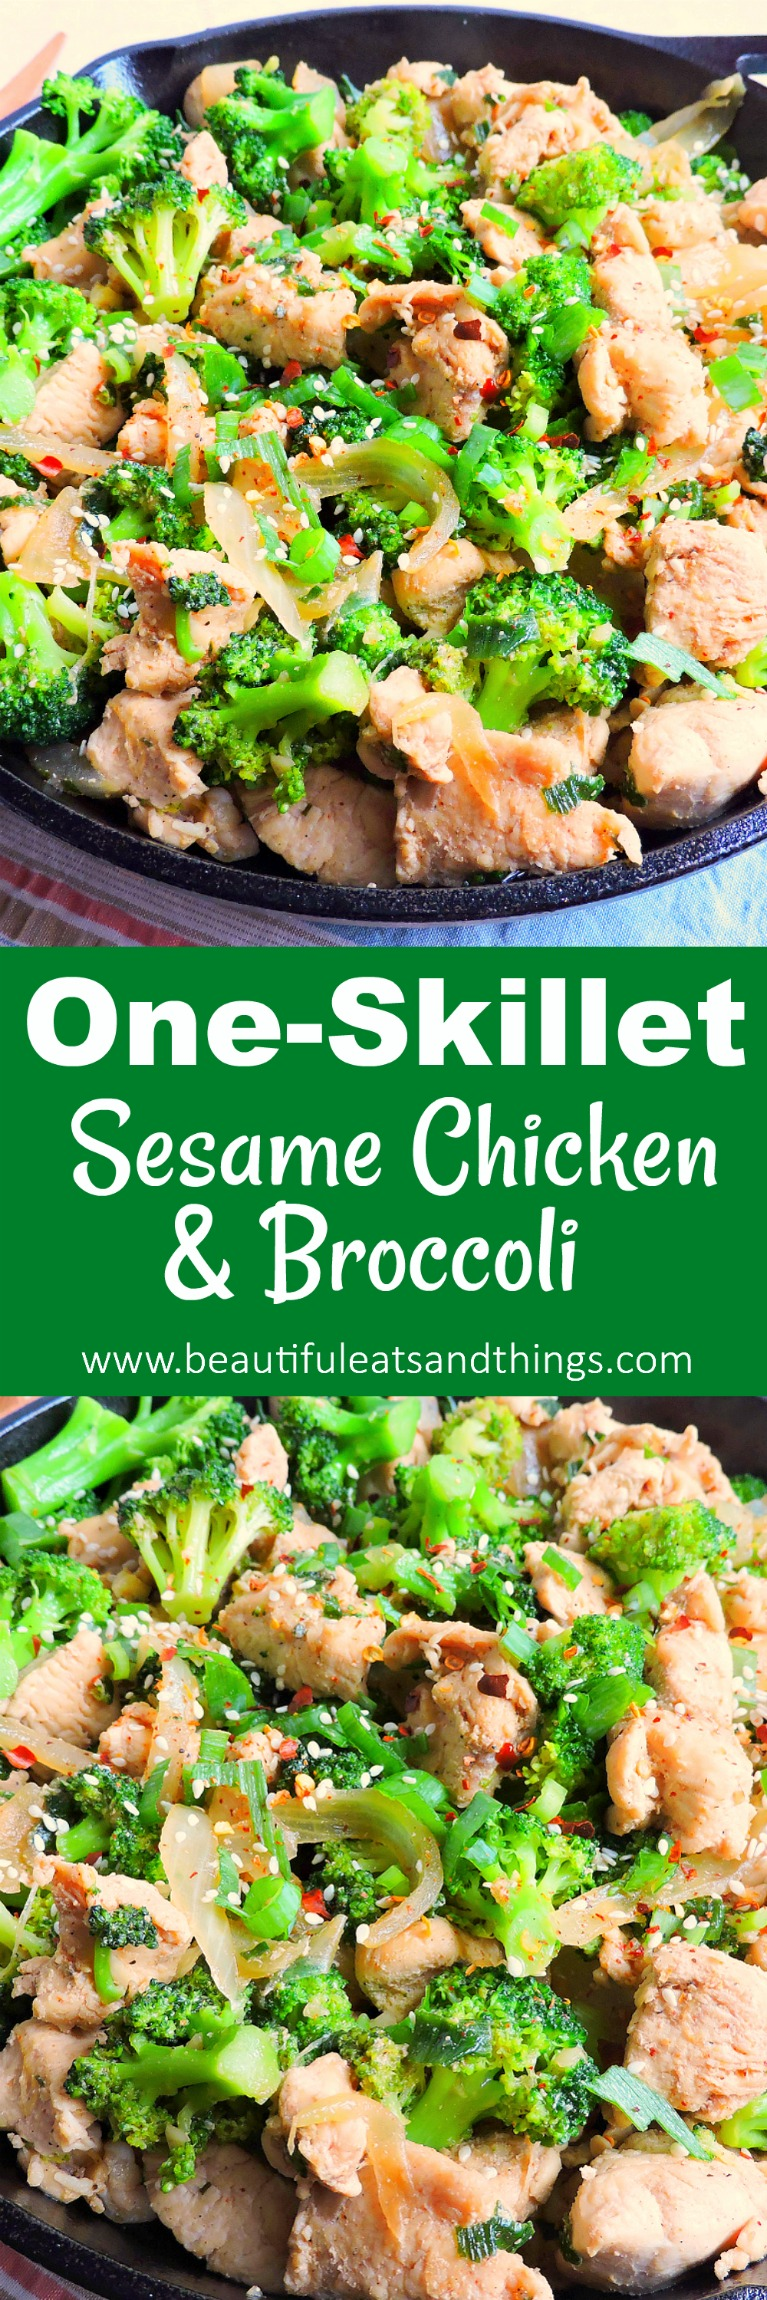 One-Skillet Sesame Chicken & Broccoli